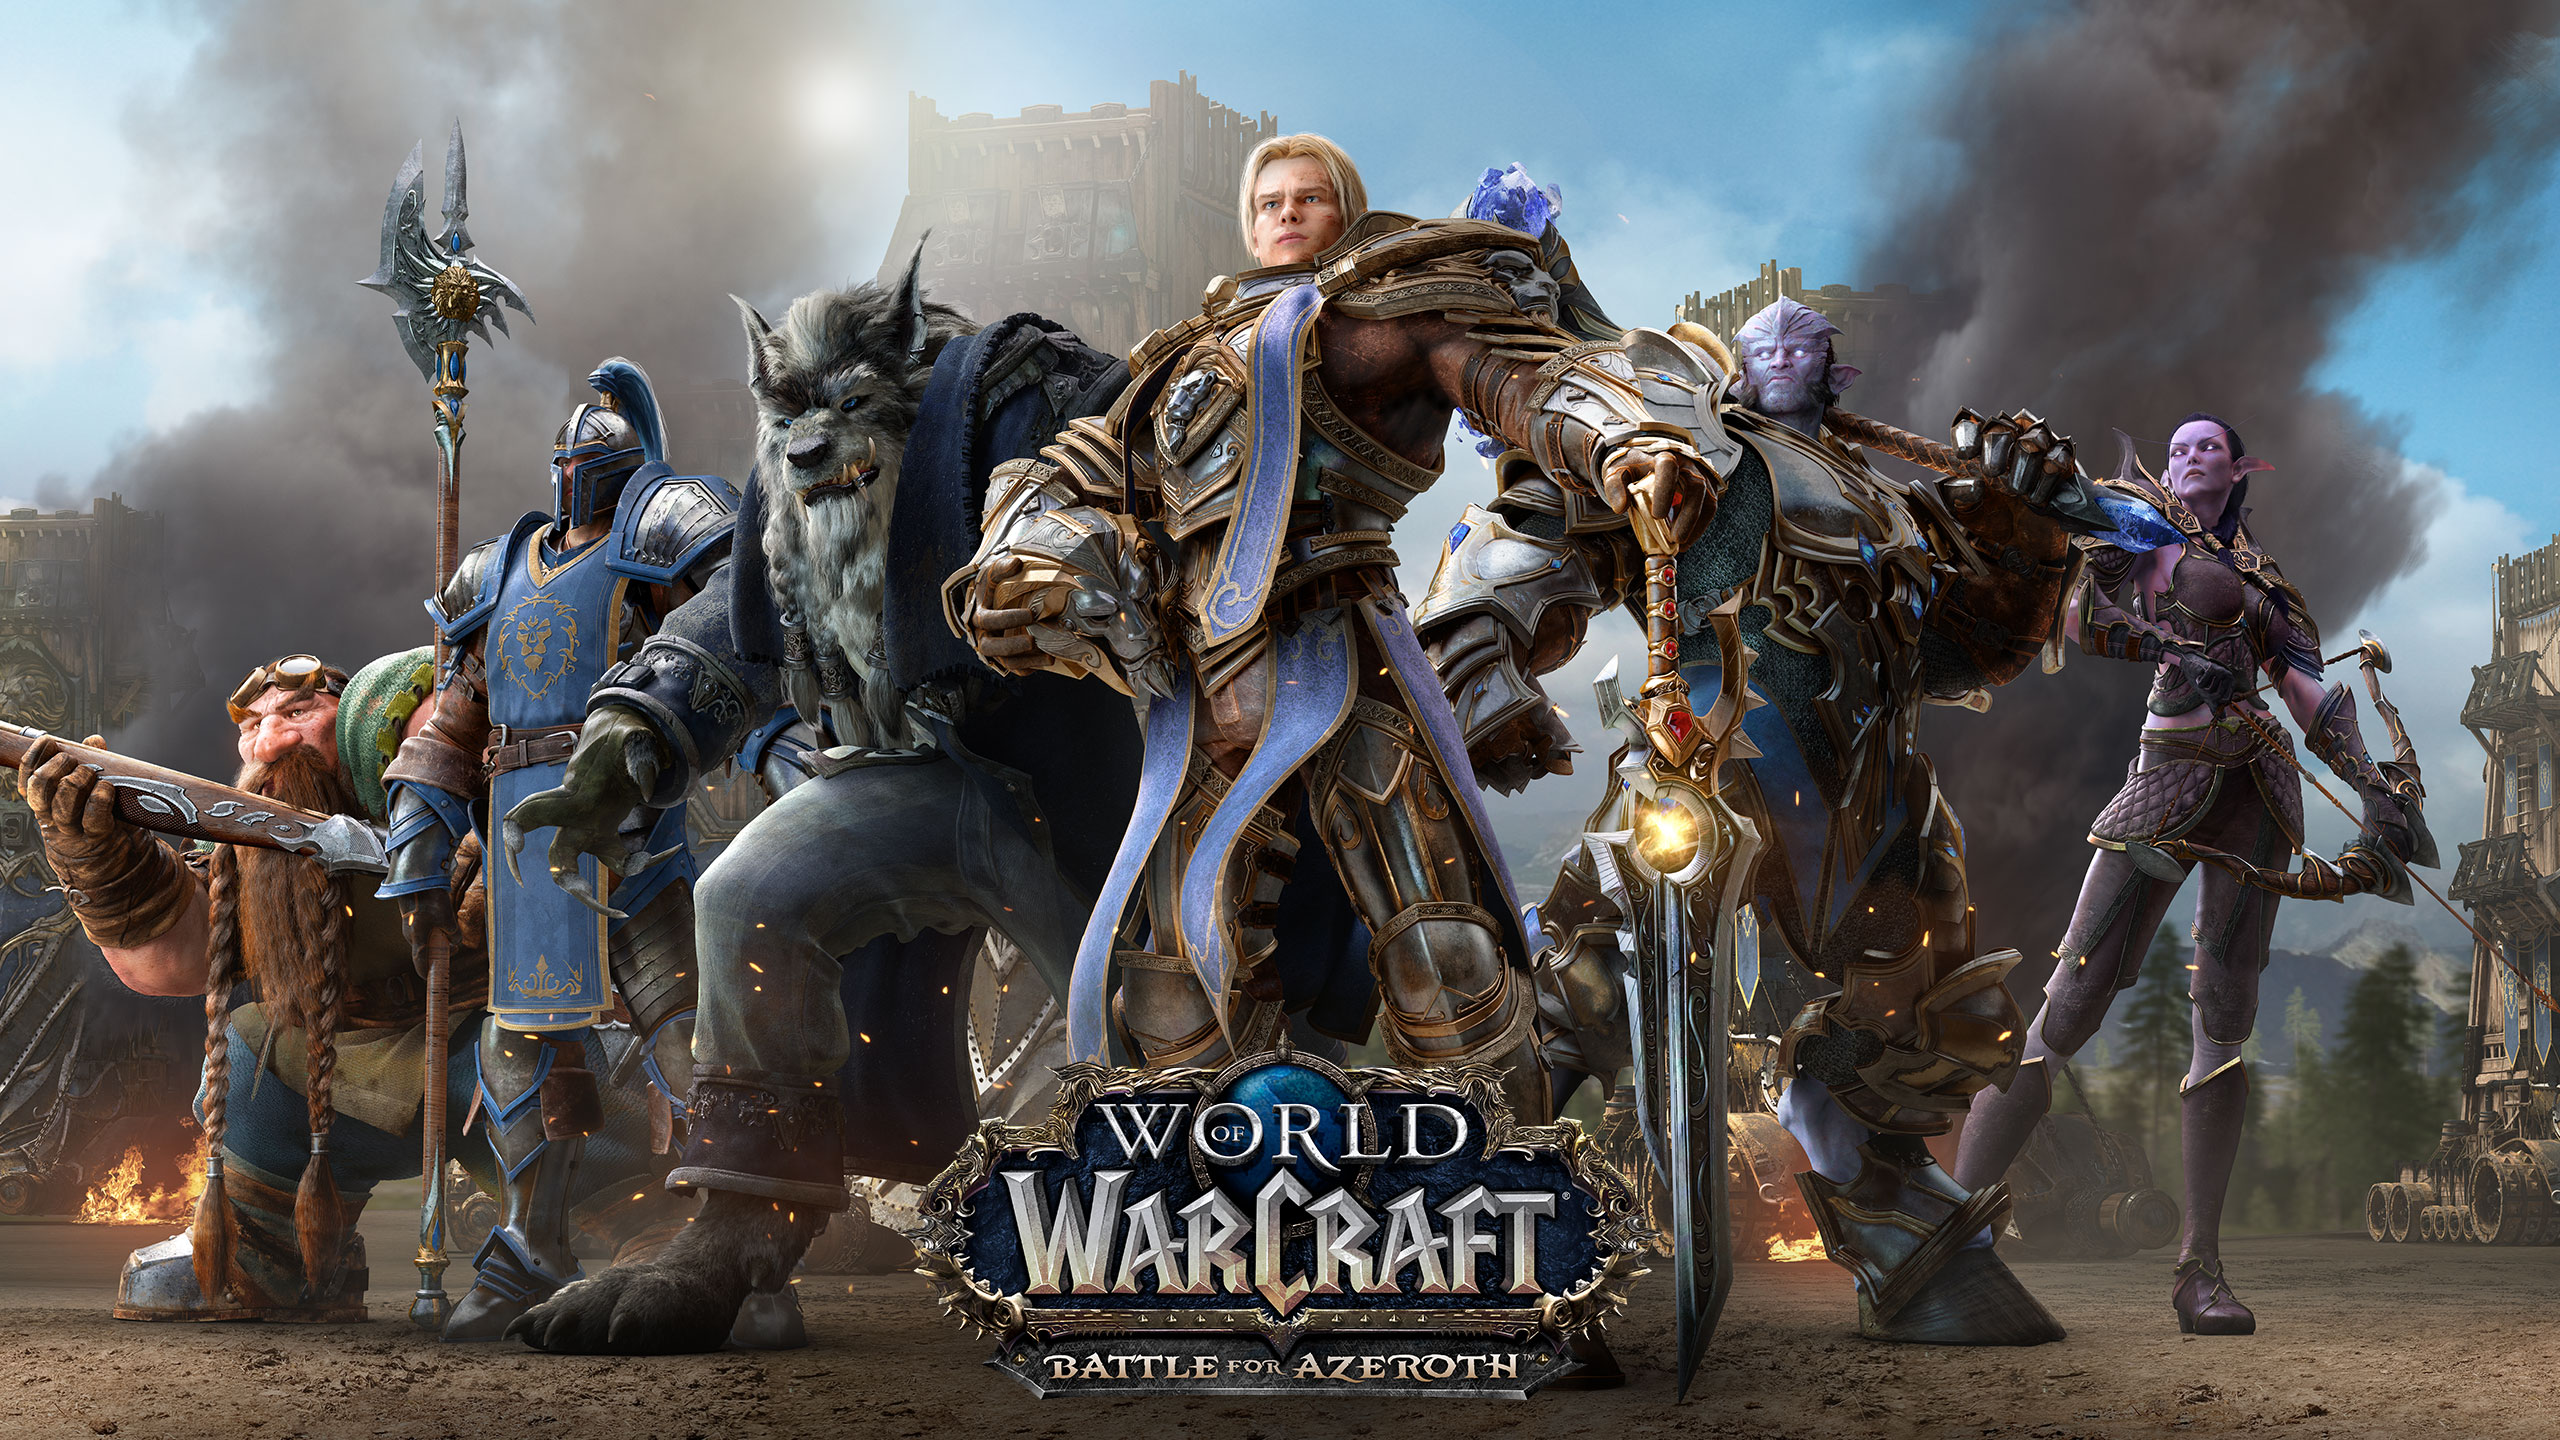 Resultado de imagen para World of Warcraft: Battle for Azeroth